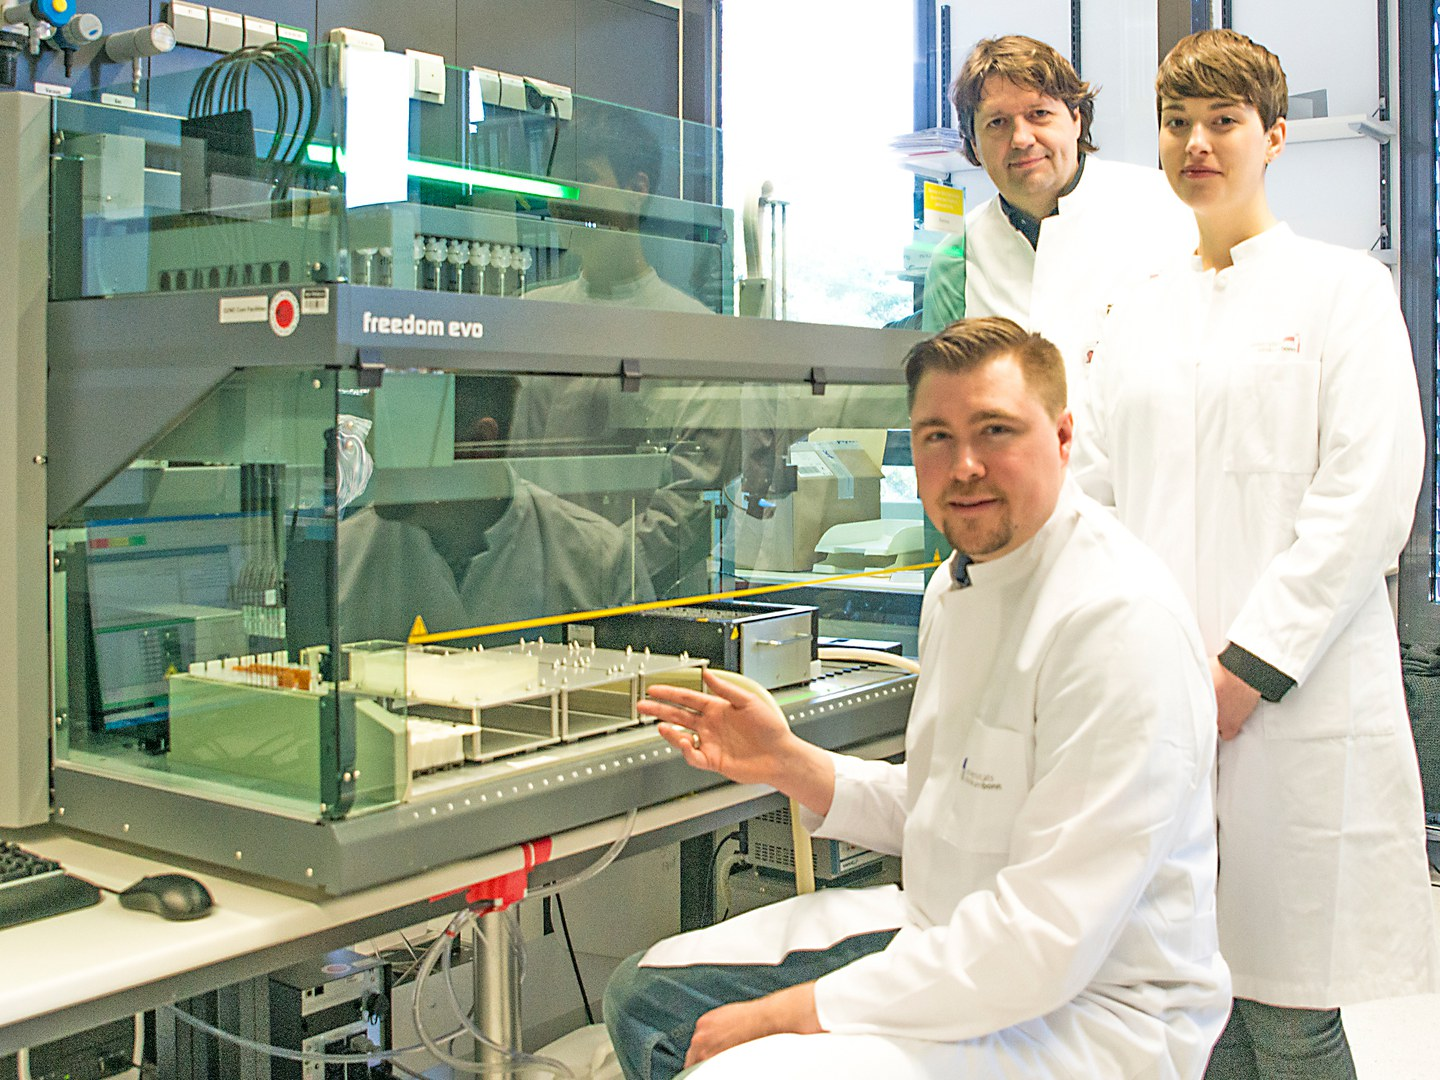 The research team at the pipetting robot